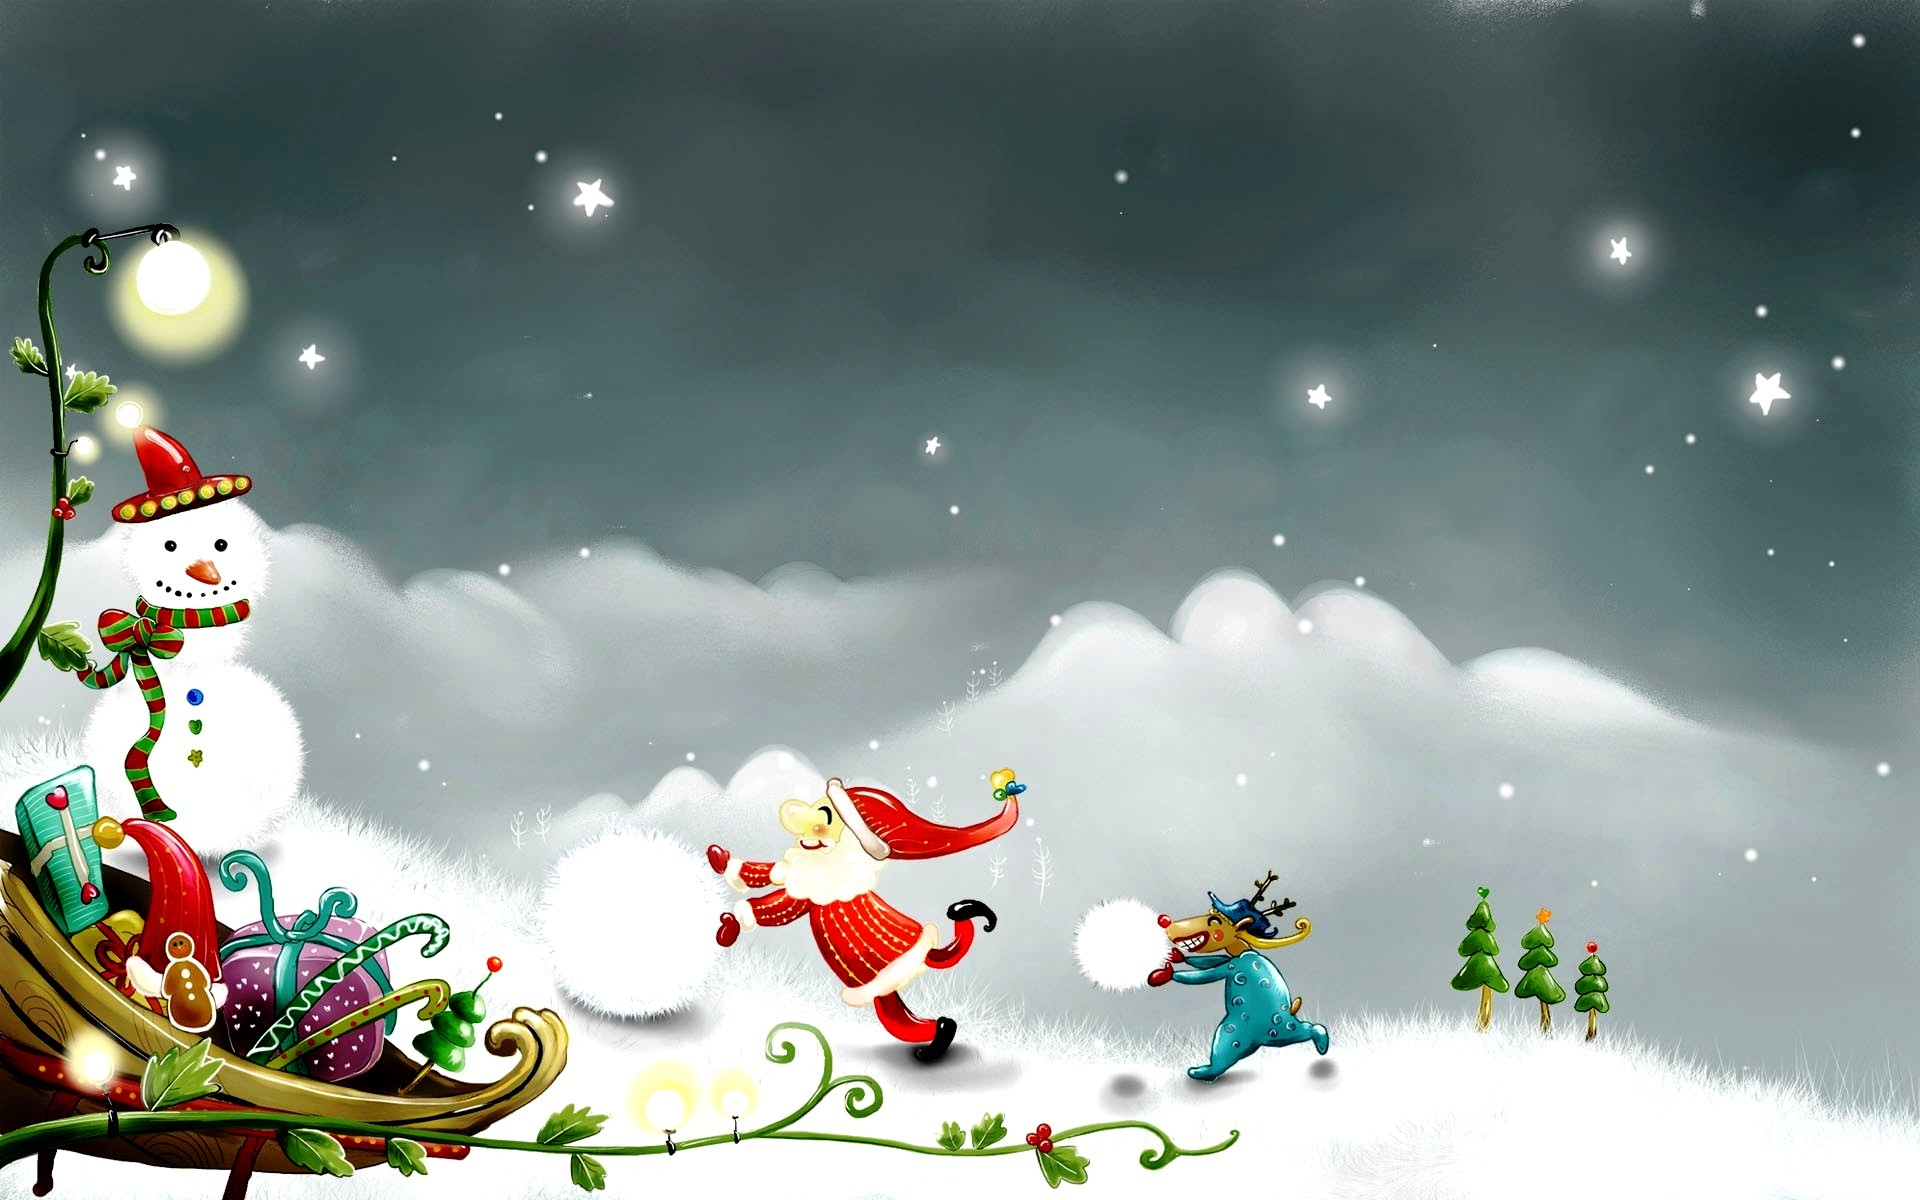 Easy Steps To Find Animated Christmas Wallpapers Free Download : Wallpapers  for Desktop with winter,